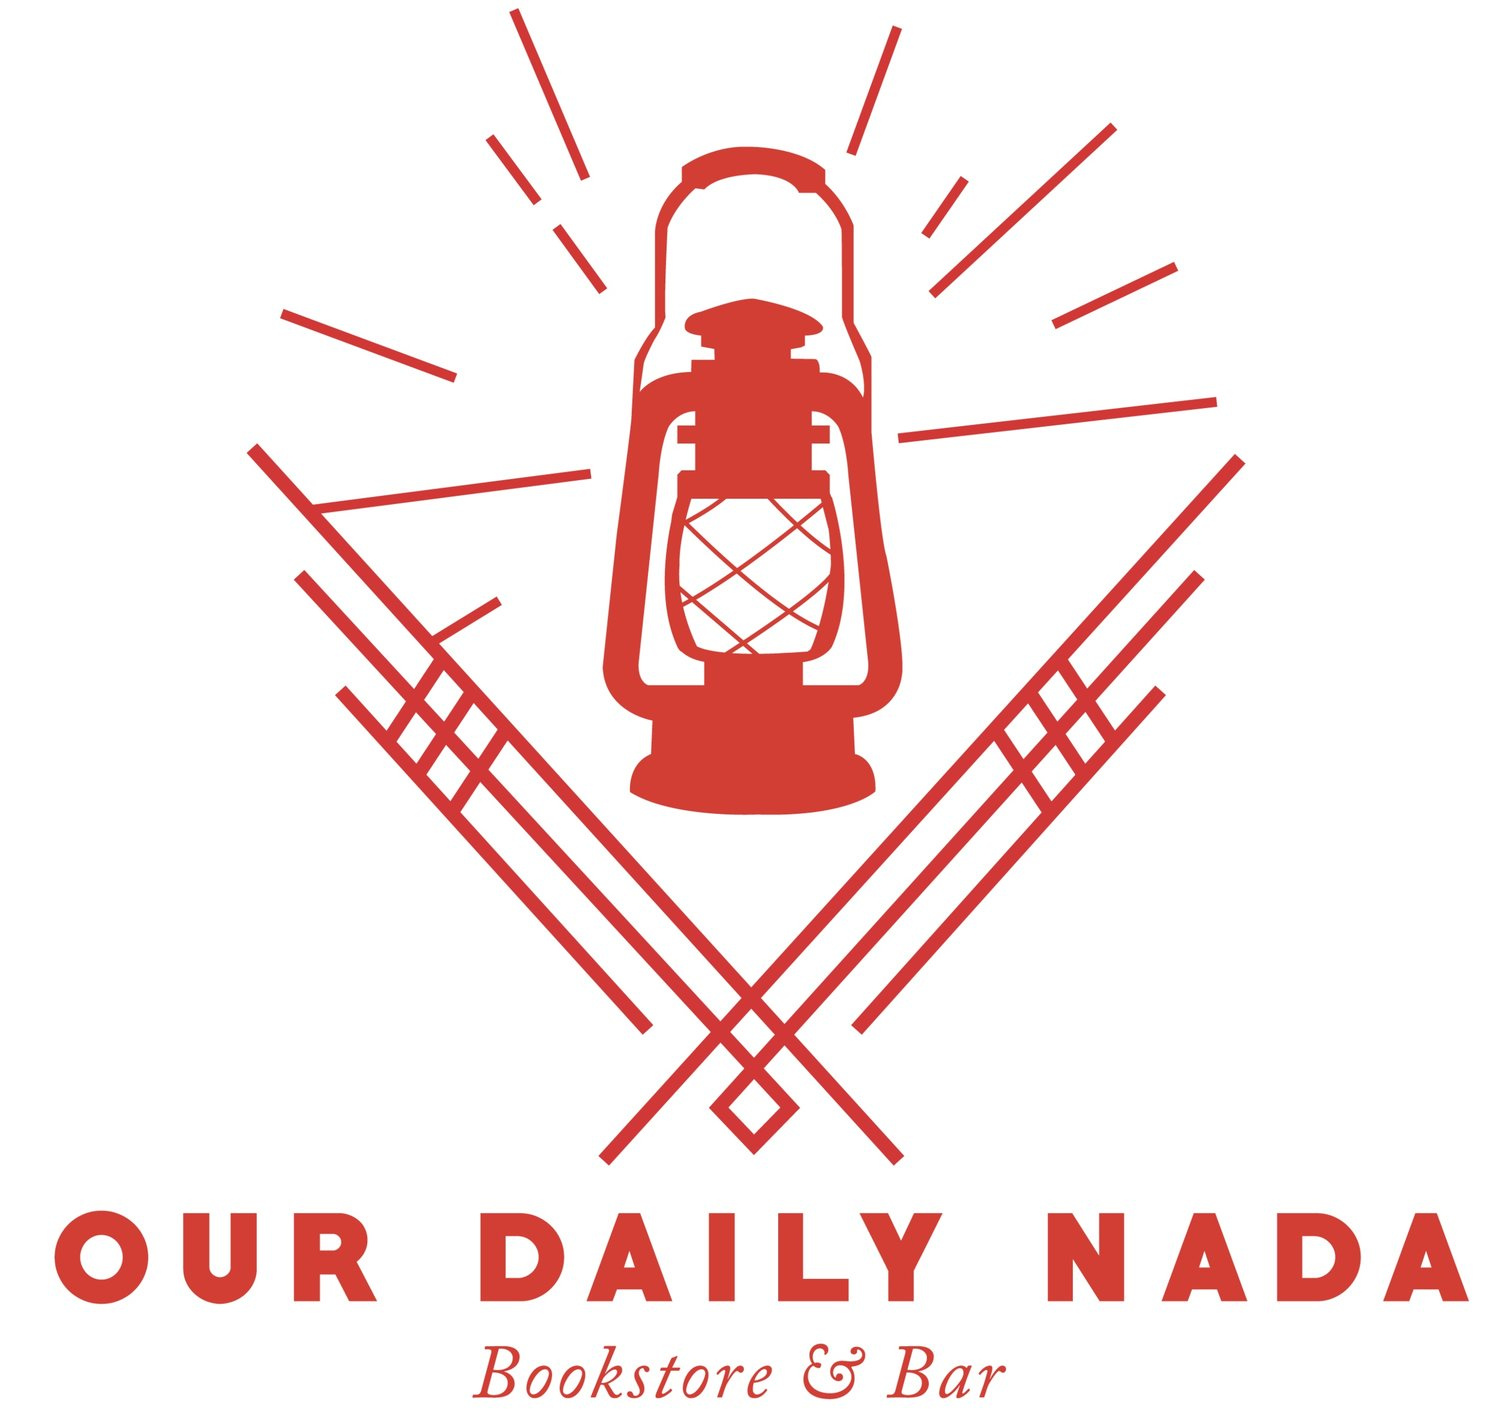 Our Daily Nada